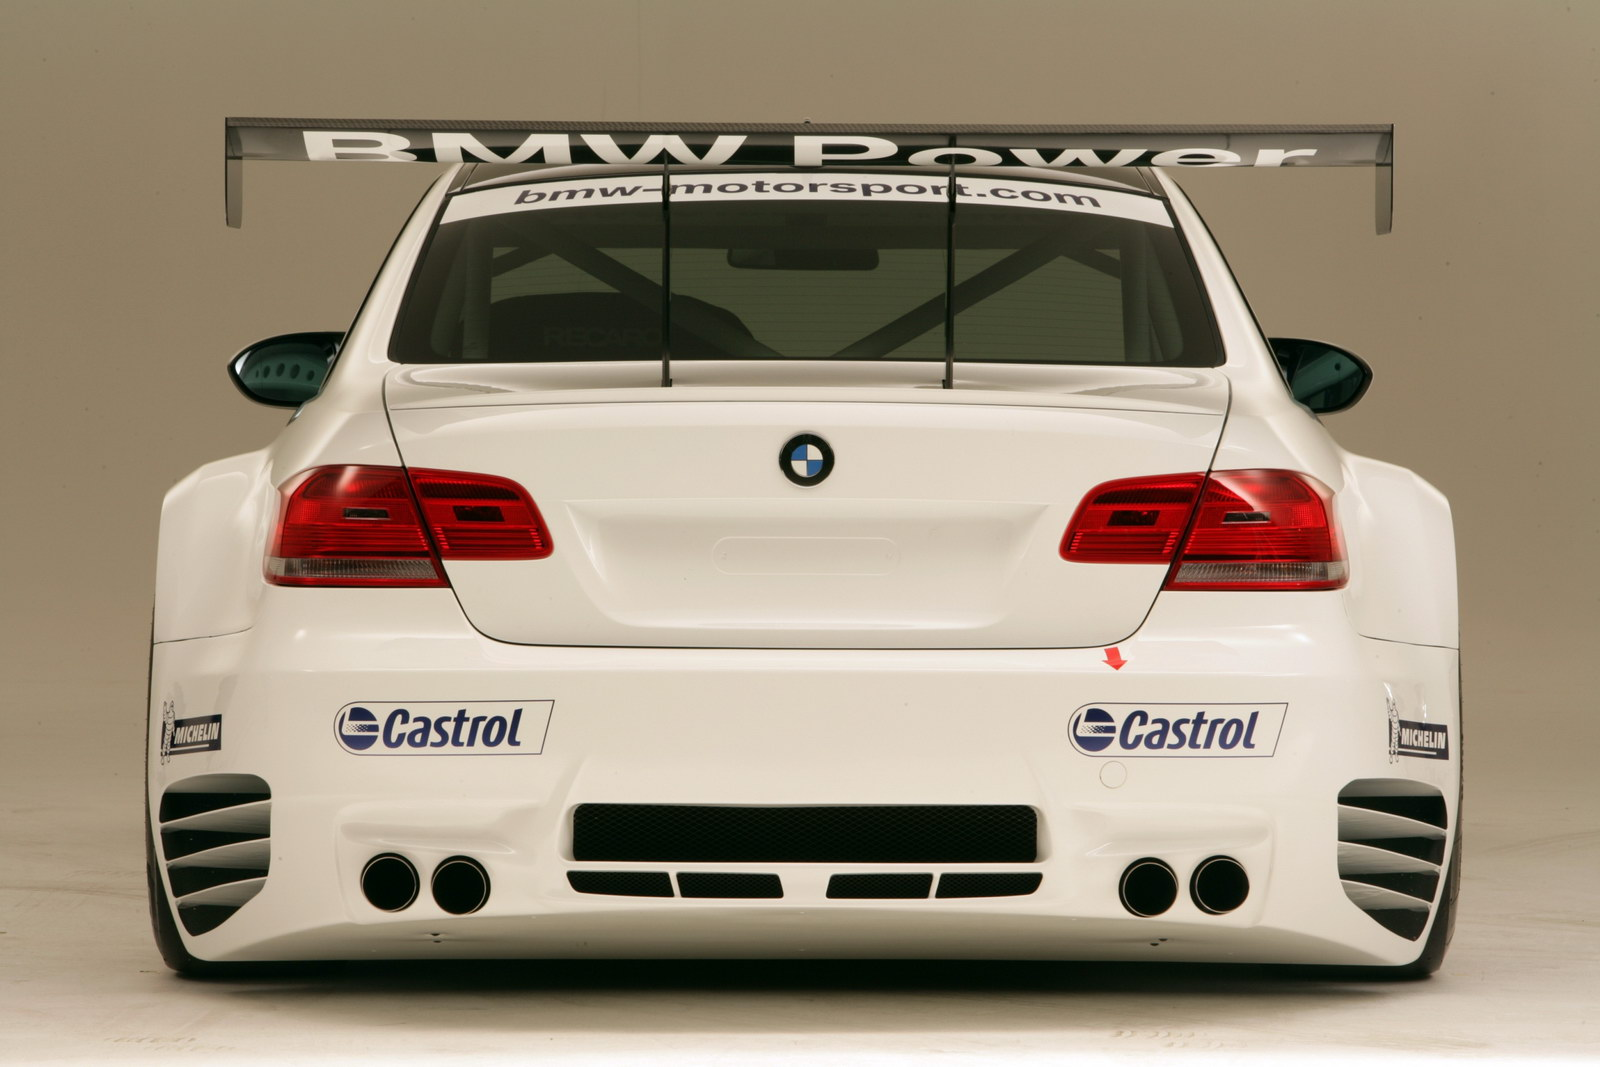 https://1.bp.blogspot.com/_U1Fc-cxHauU/TAak_76tJ-I/AAAAAAAAAhg/o5GfXU9CFQc/s1600/bmw-m3-race-version-hr-02.jpg